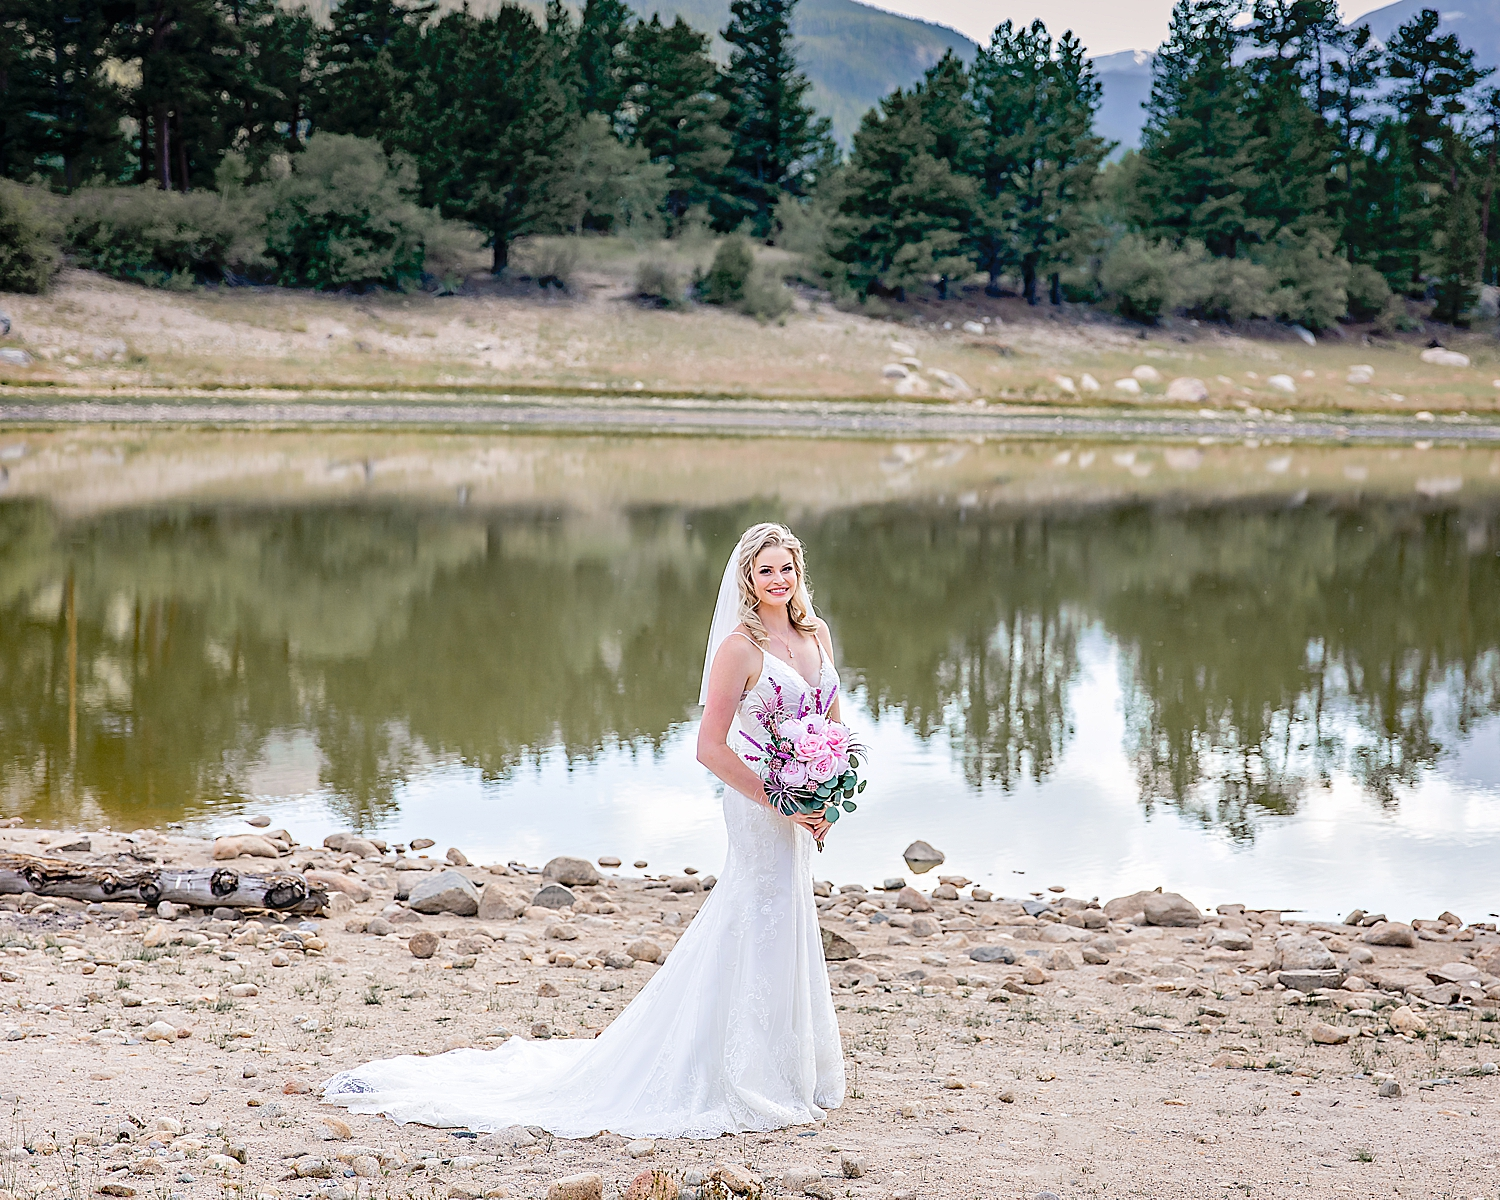 Carly-Barton-Photography-Rocky-Mountain-National-Park-Estes-Park-Wedding-Elopement_0028.jpg